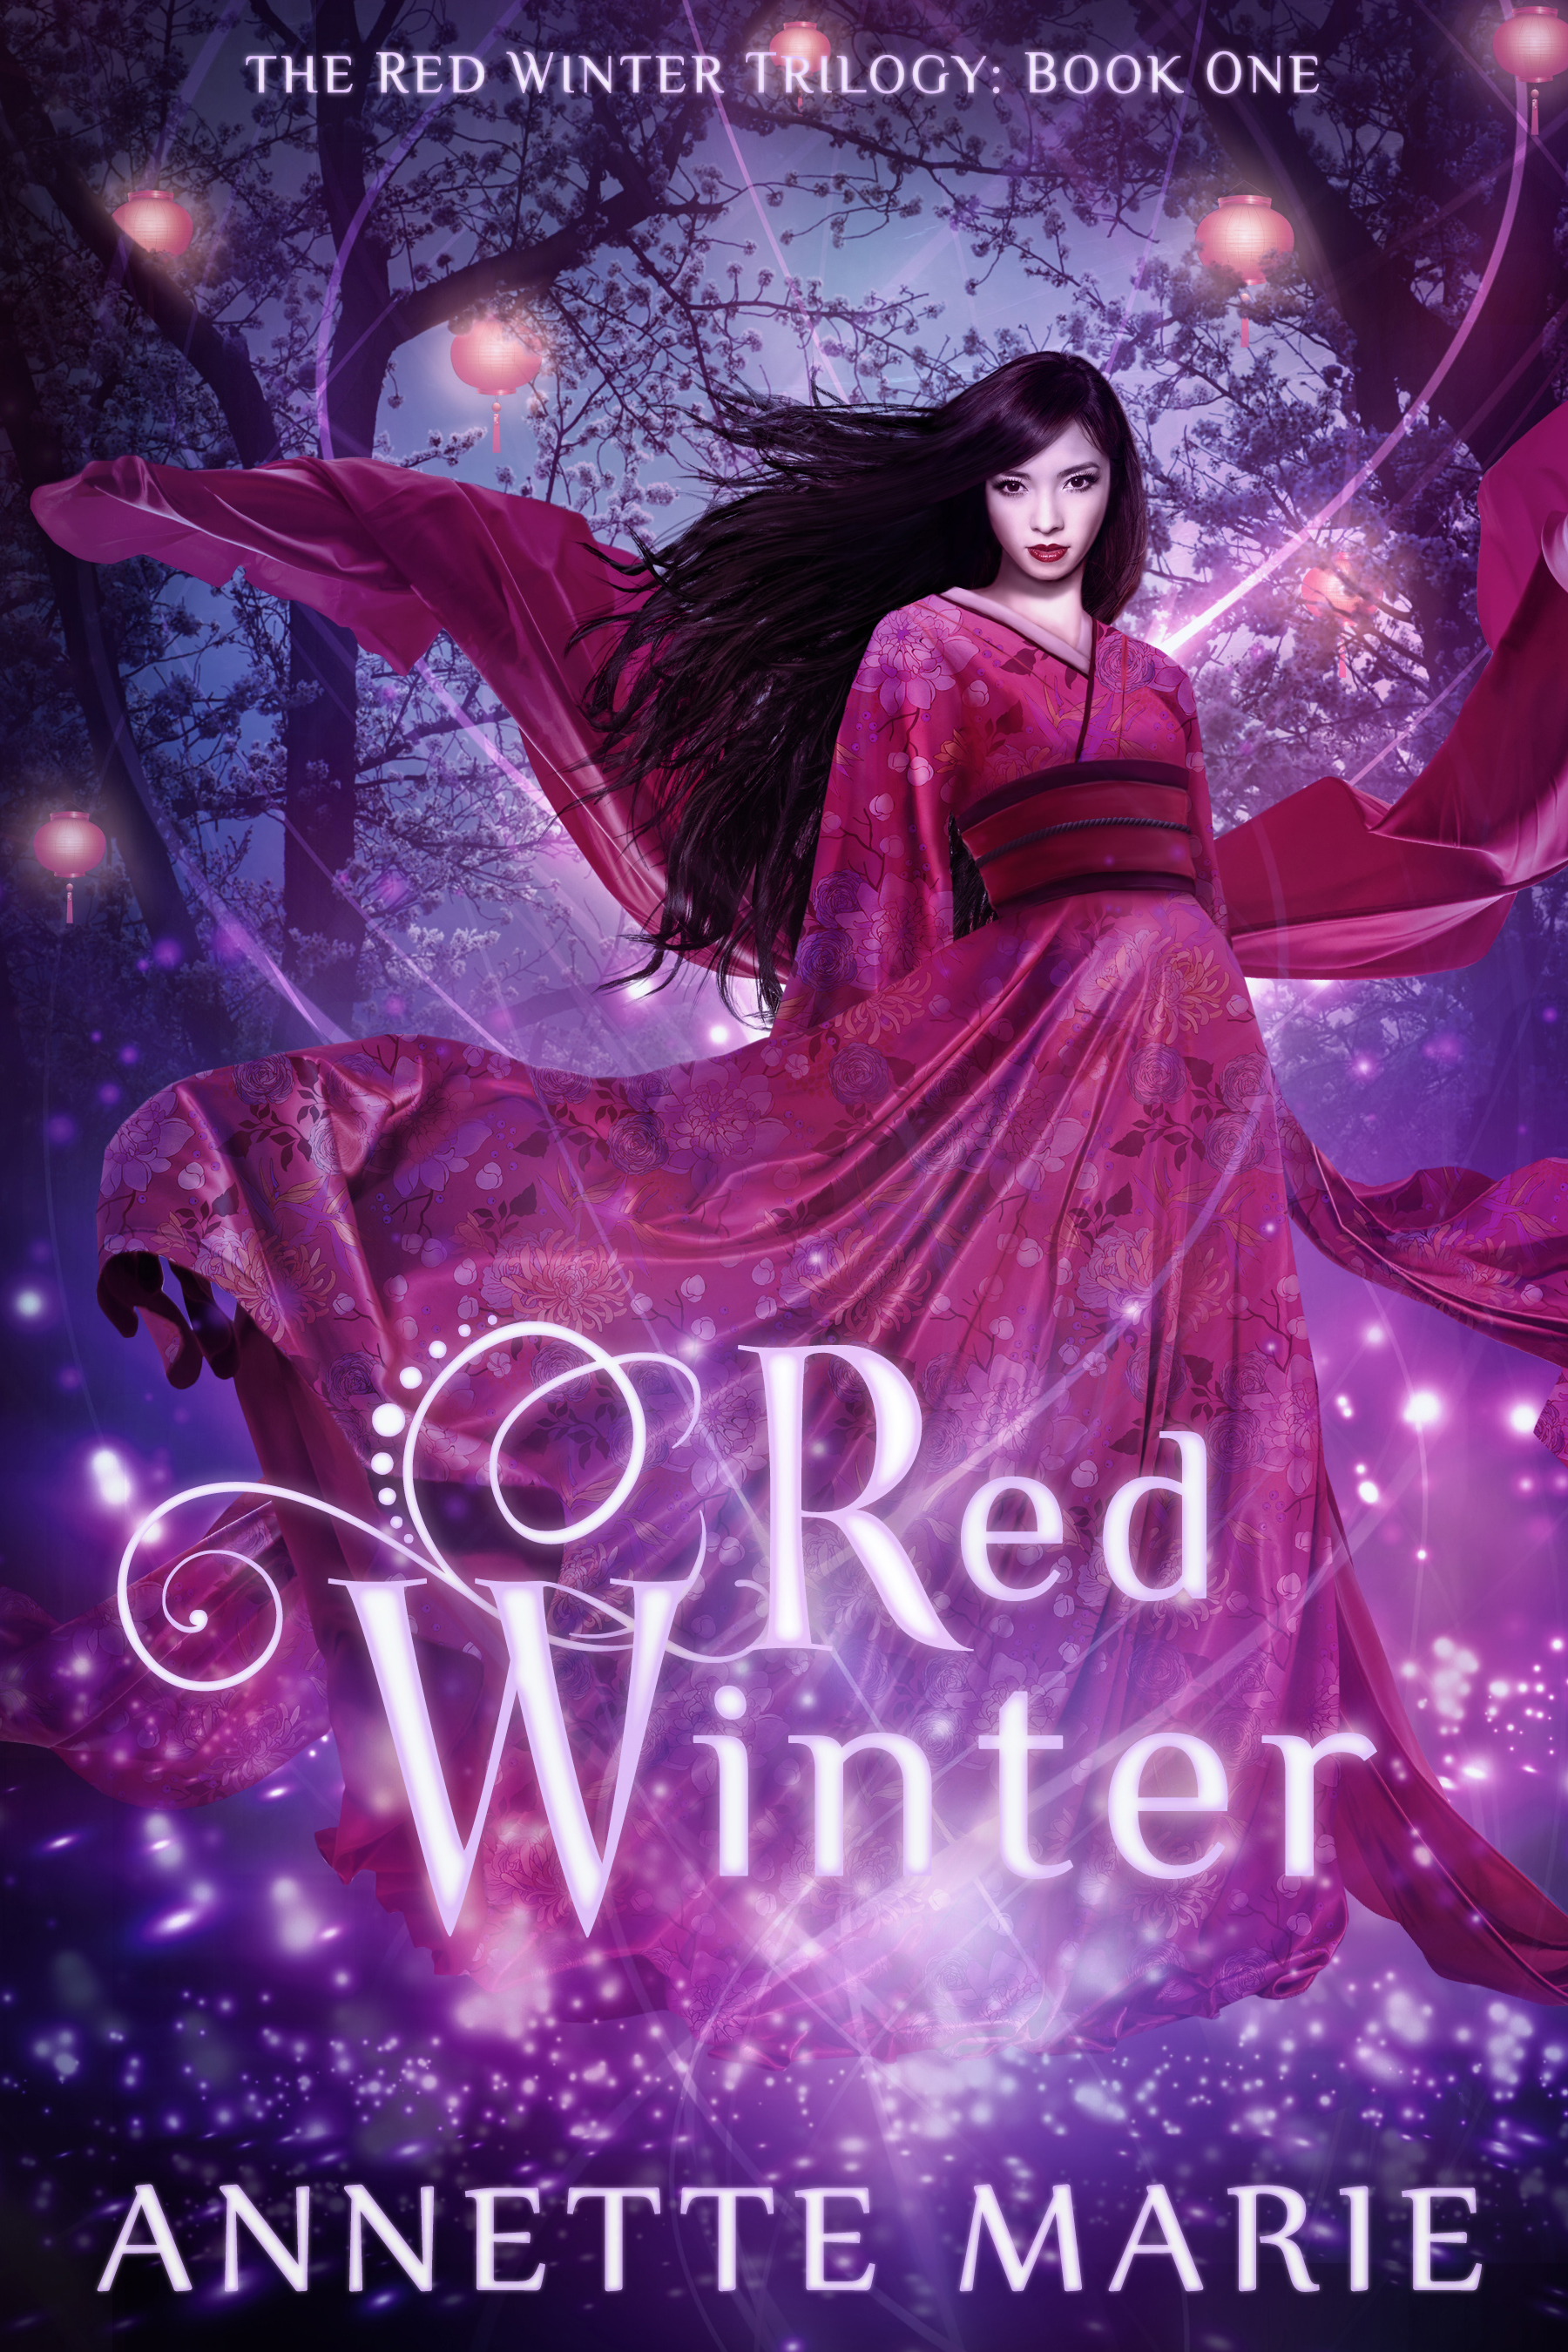 Image result for red winter cover book